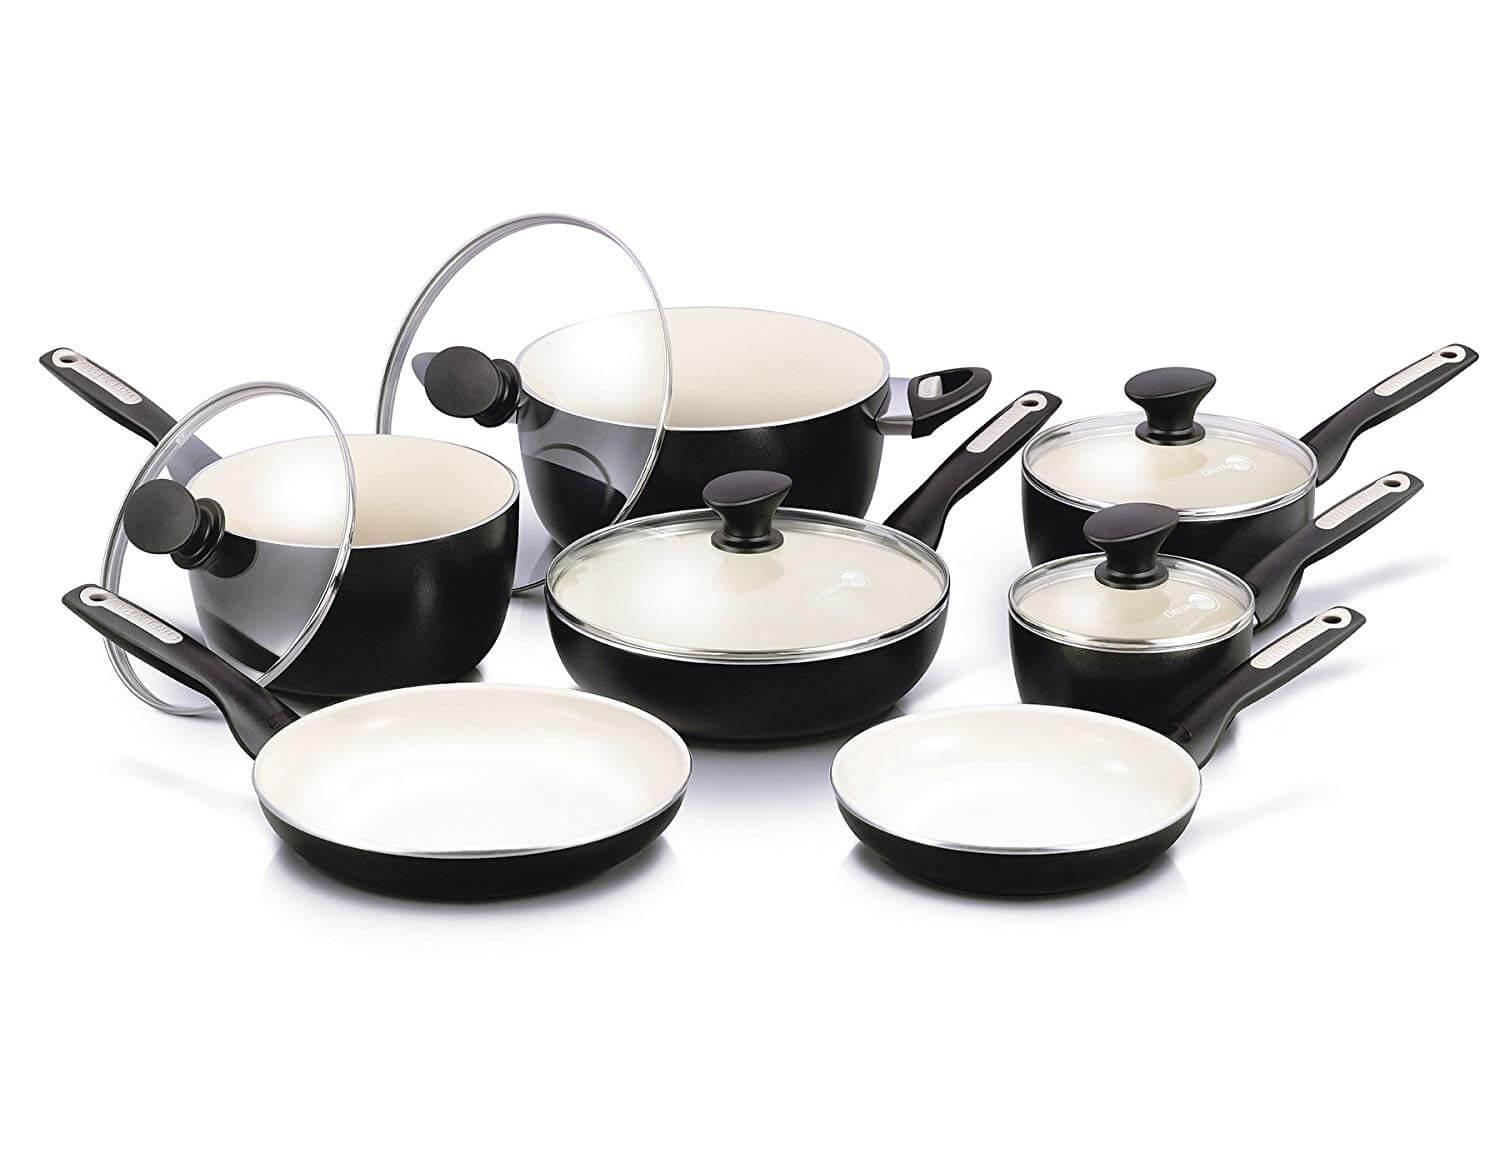 GreenPan Rio Black Ceramic Cookware Set